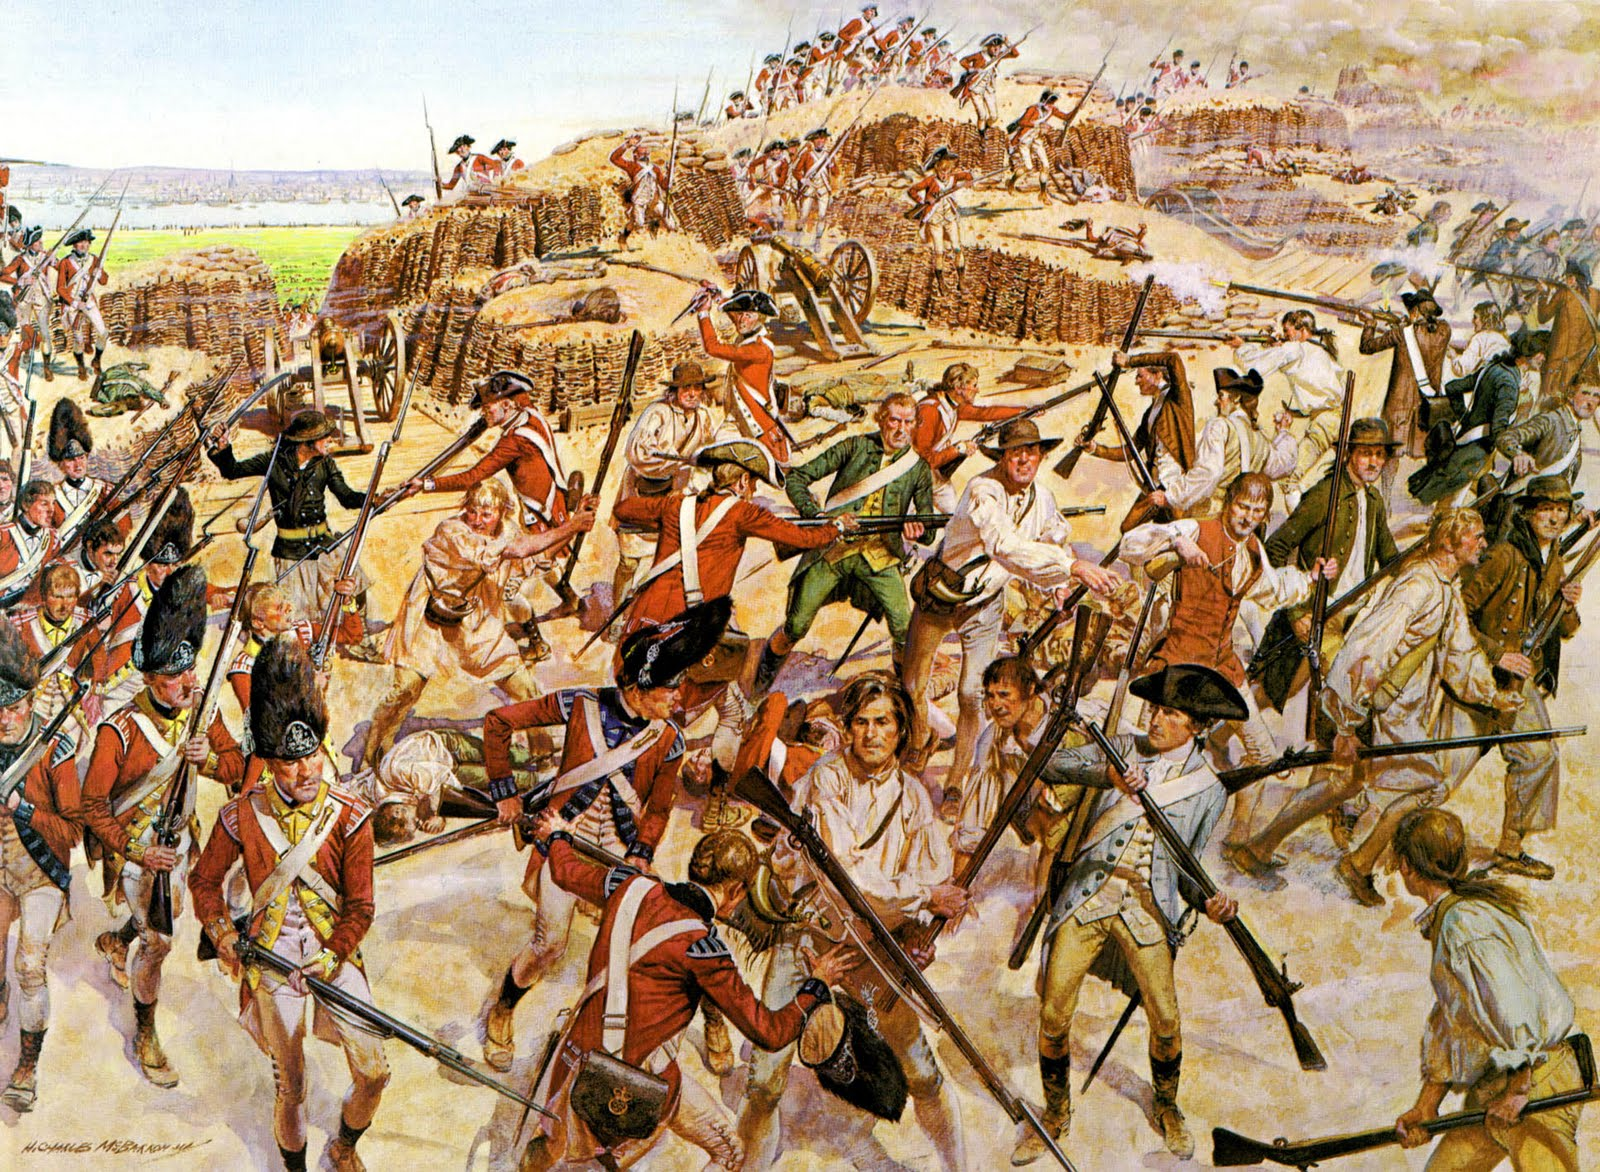 a history of the battle of bunker hill in the american revolutionary war The battle of bunker hill this is the website for the american military history starting with the revolutionary war we'll cover military engagements.